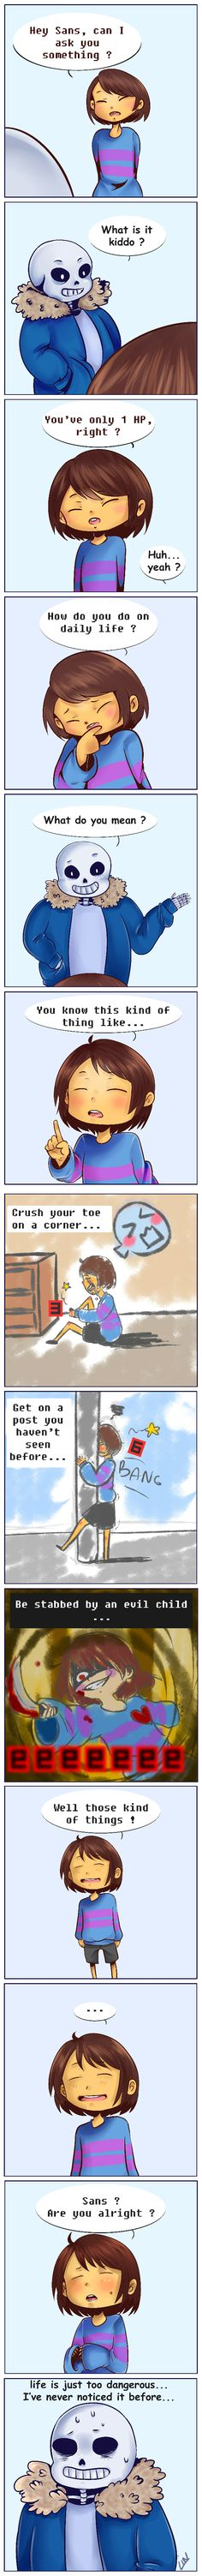 Hey Sans, can I ask you something ? Л What is it kiddo ? You'ue only 1 HP, right ? How do you do on daily life ? What do you mean ? You know this kind of thing like... Crush your toe on a corner... Get on а post you hauen 't seen before... №11 those kind life is just too dangerous...